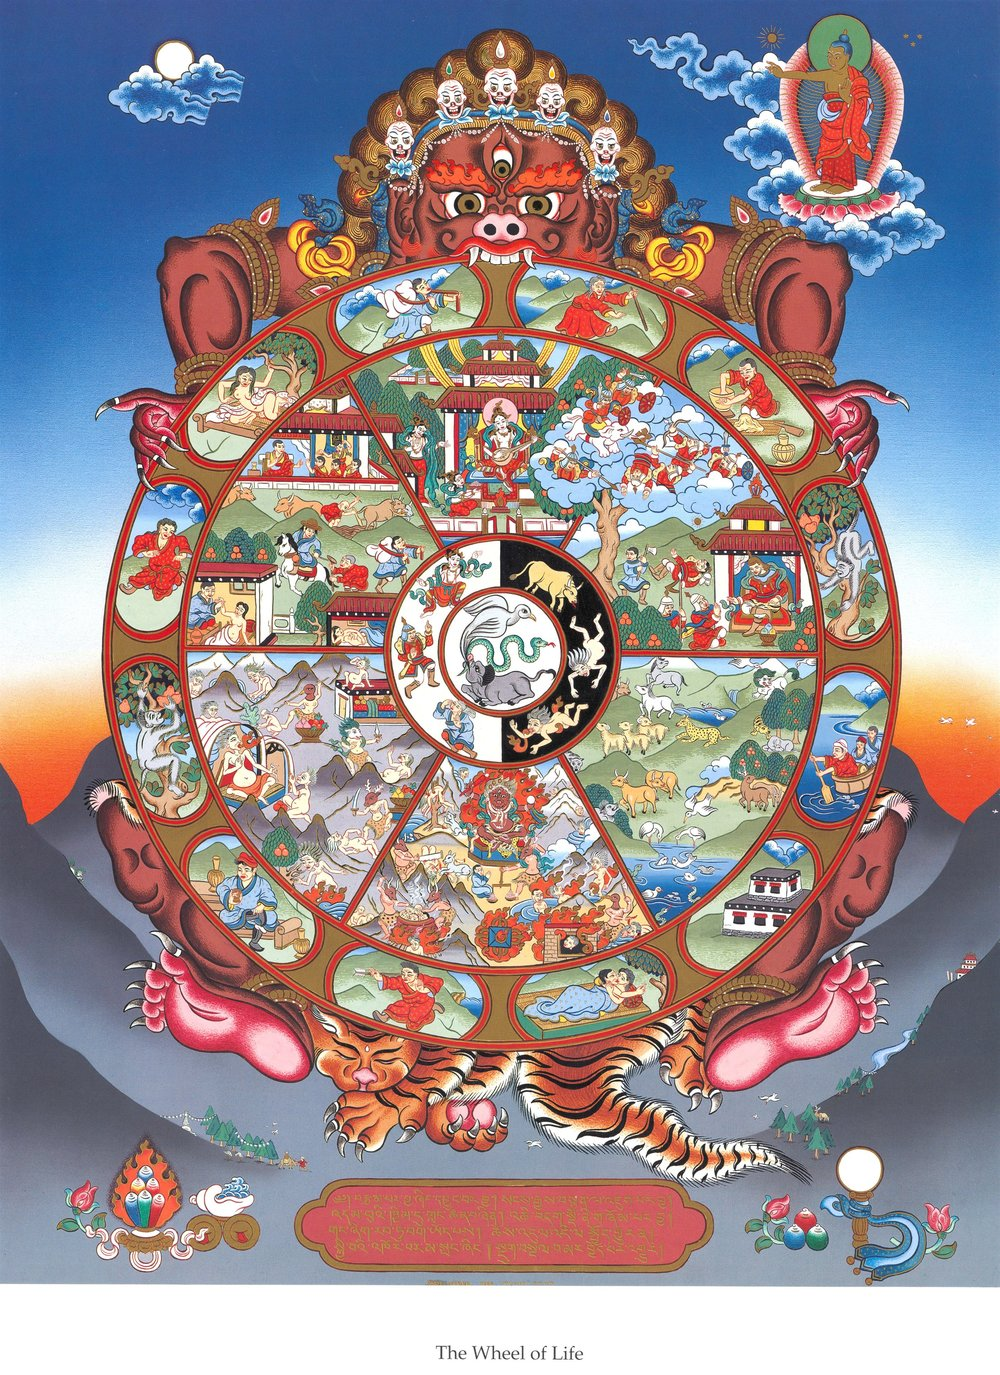 六道轮回图 - The Wheel of Life